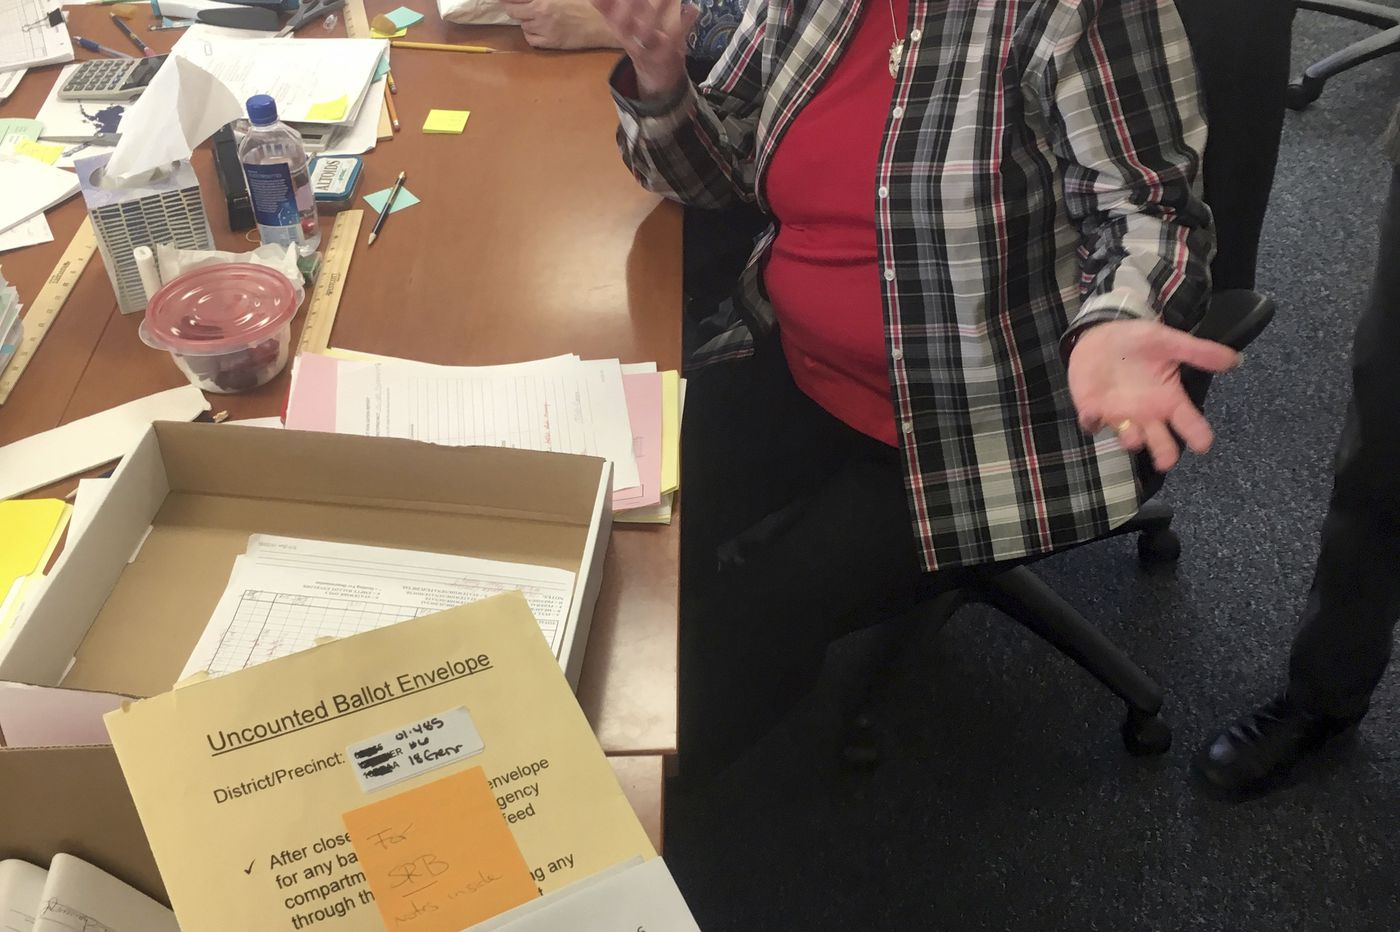 Mystery ballot could sway control of Alaska state government